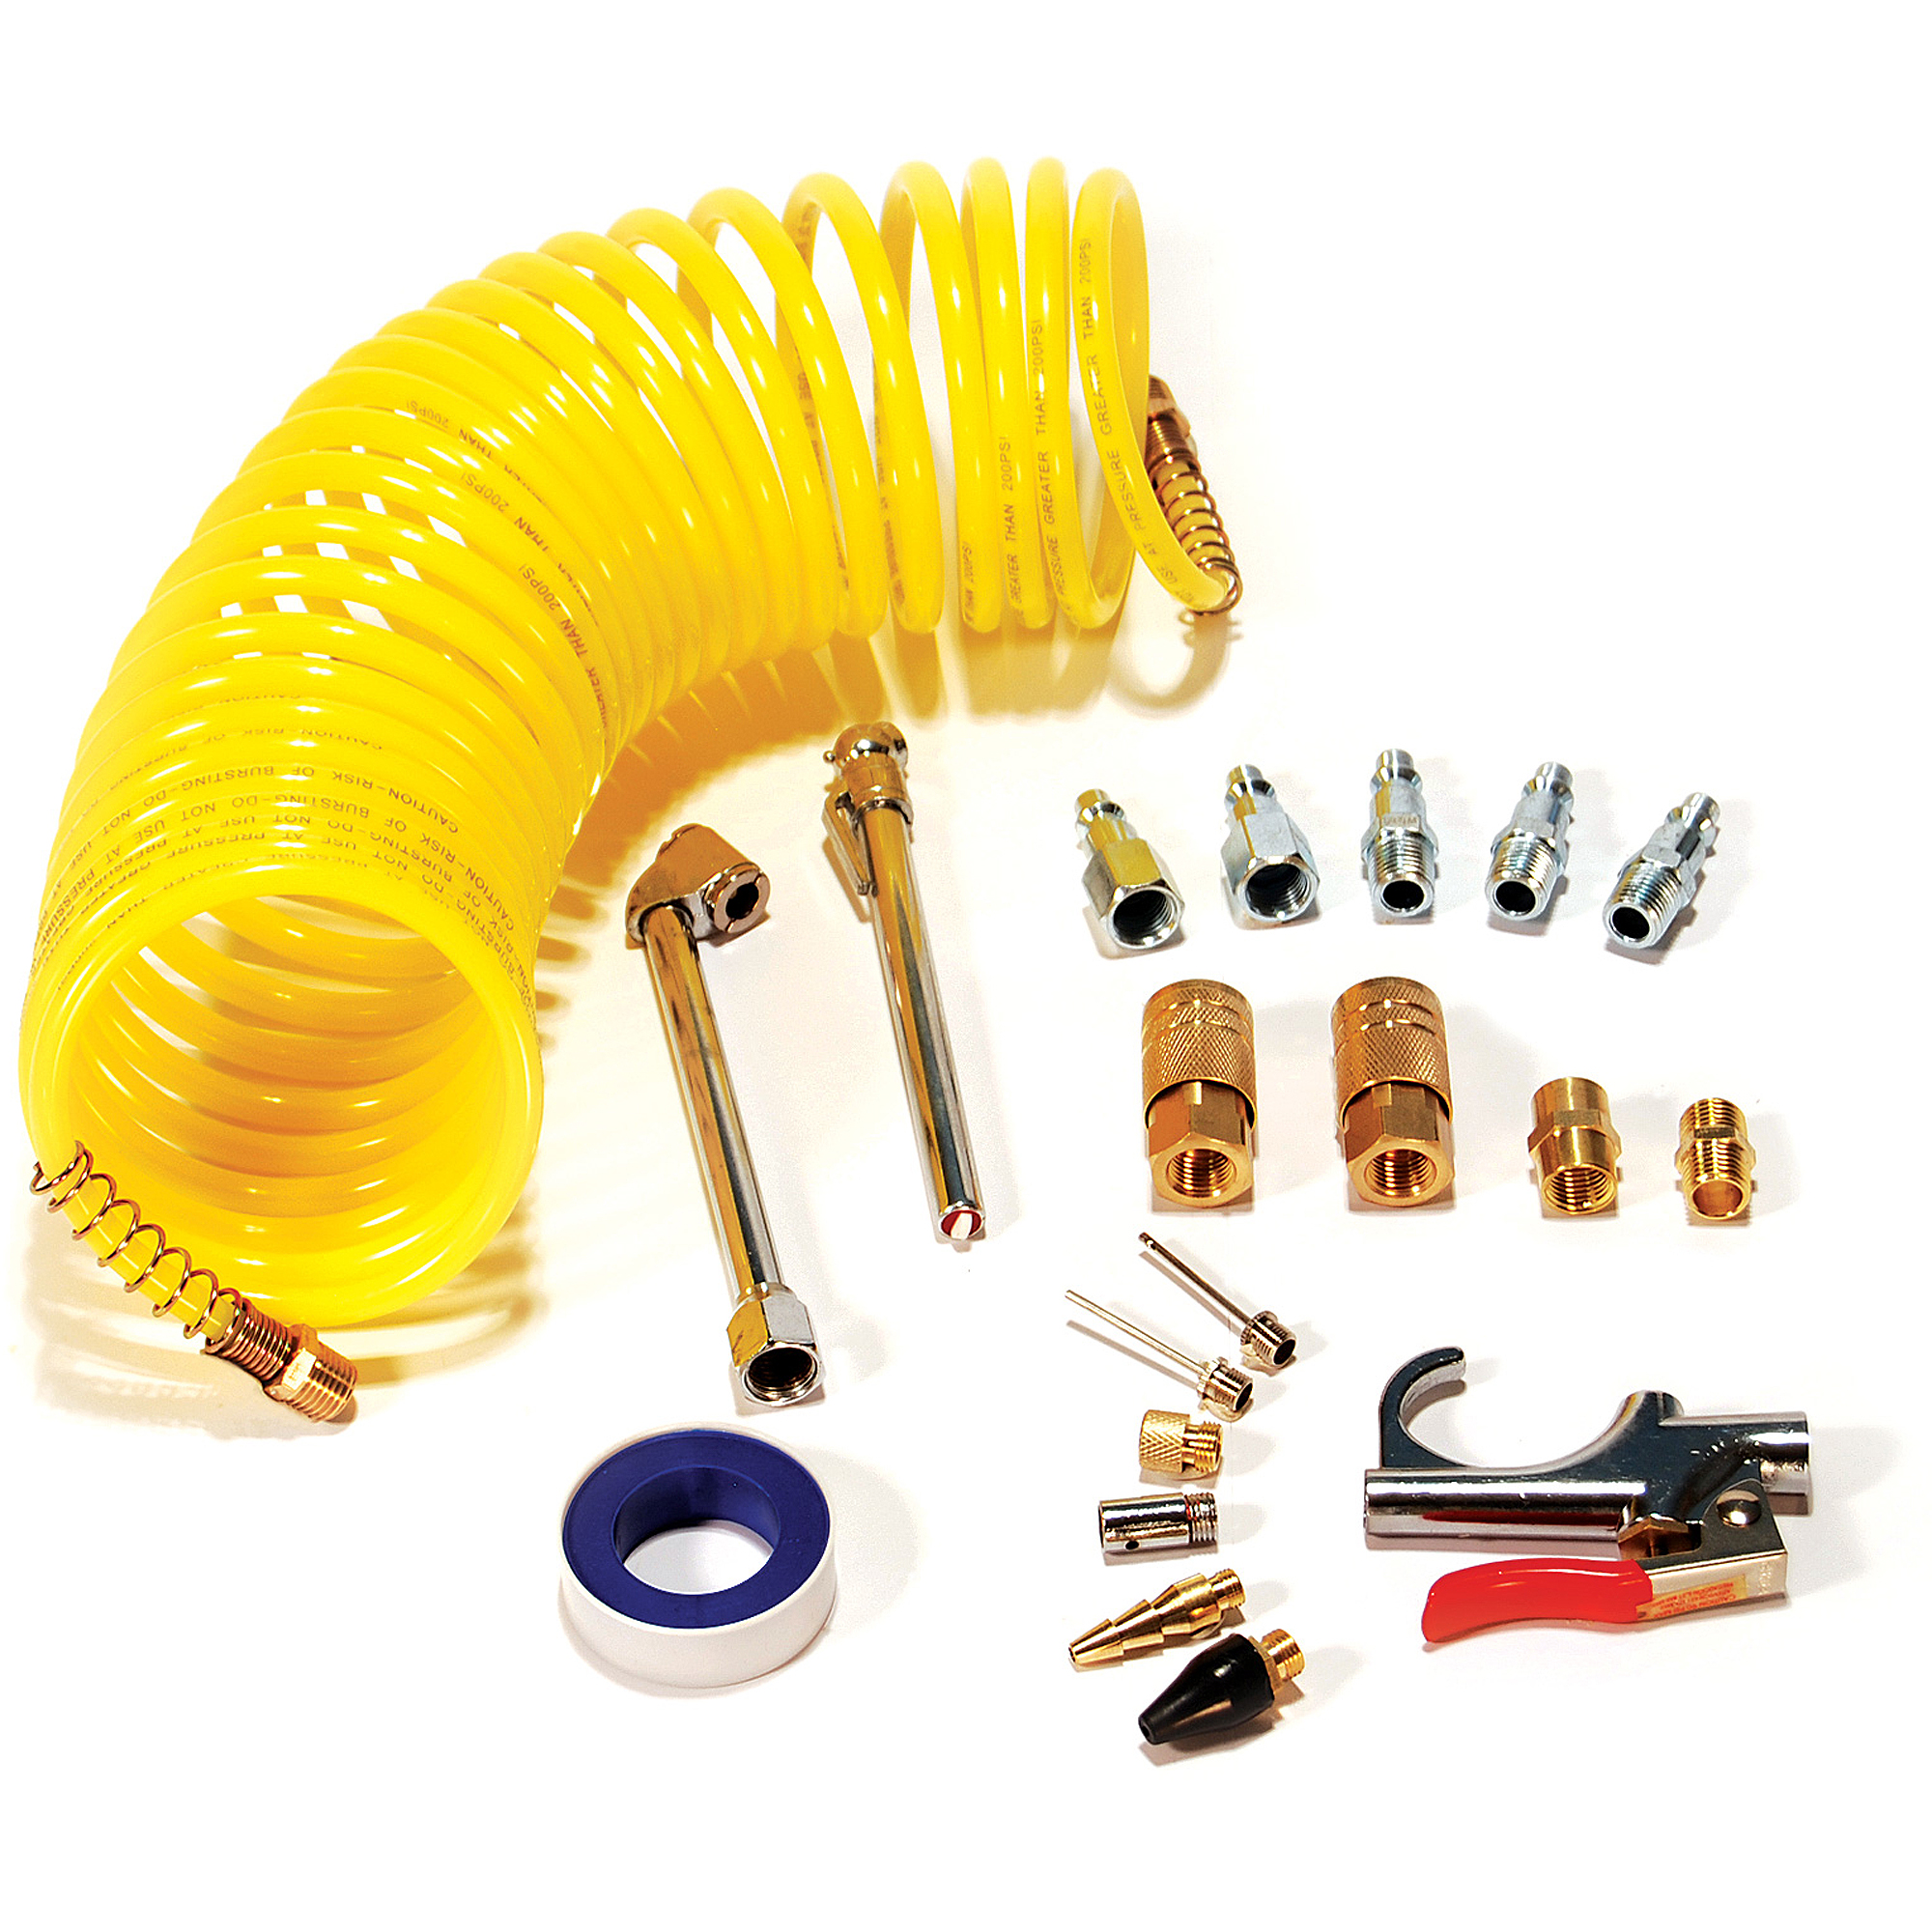 Primefit IK1016S-20 Air Accessory Kit with 25' Recoil Air Hose, 20-Pieces